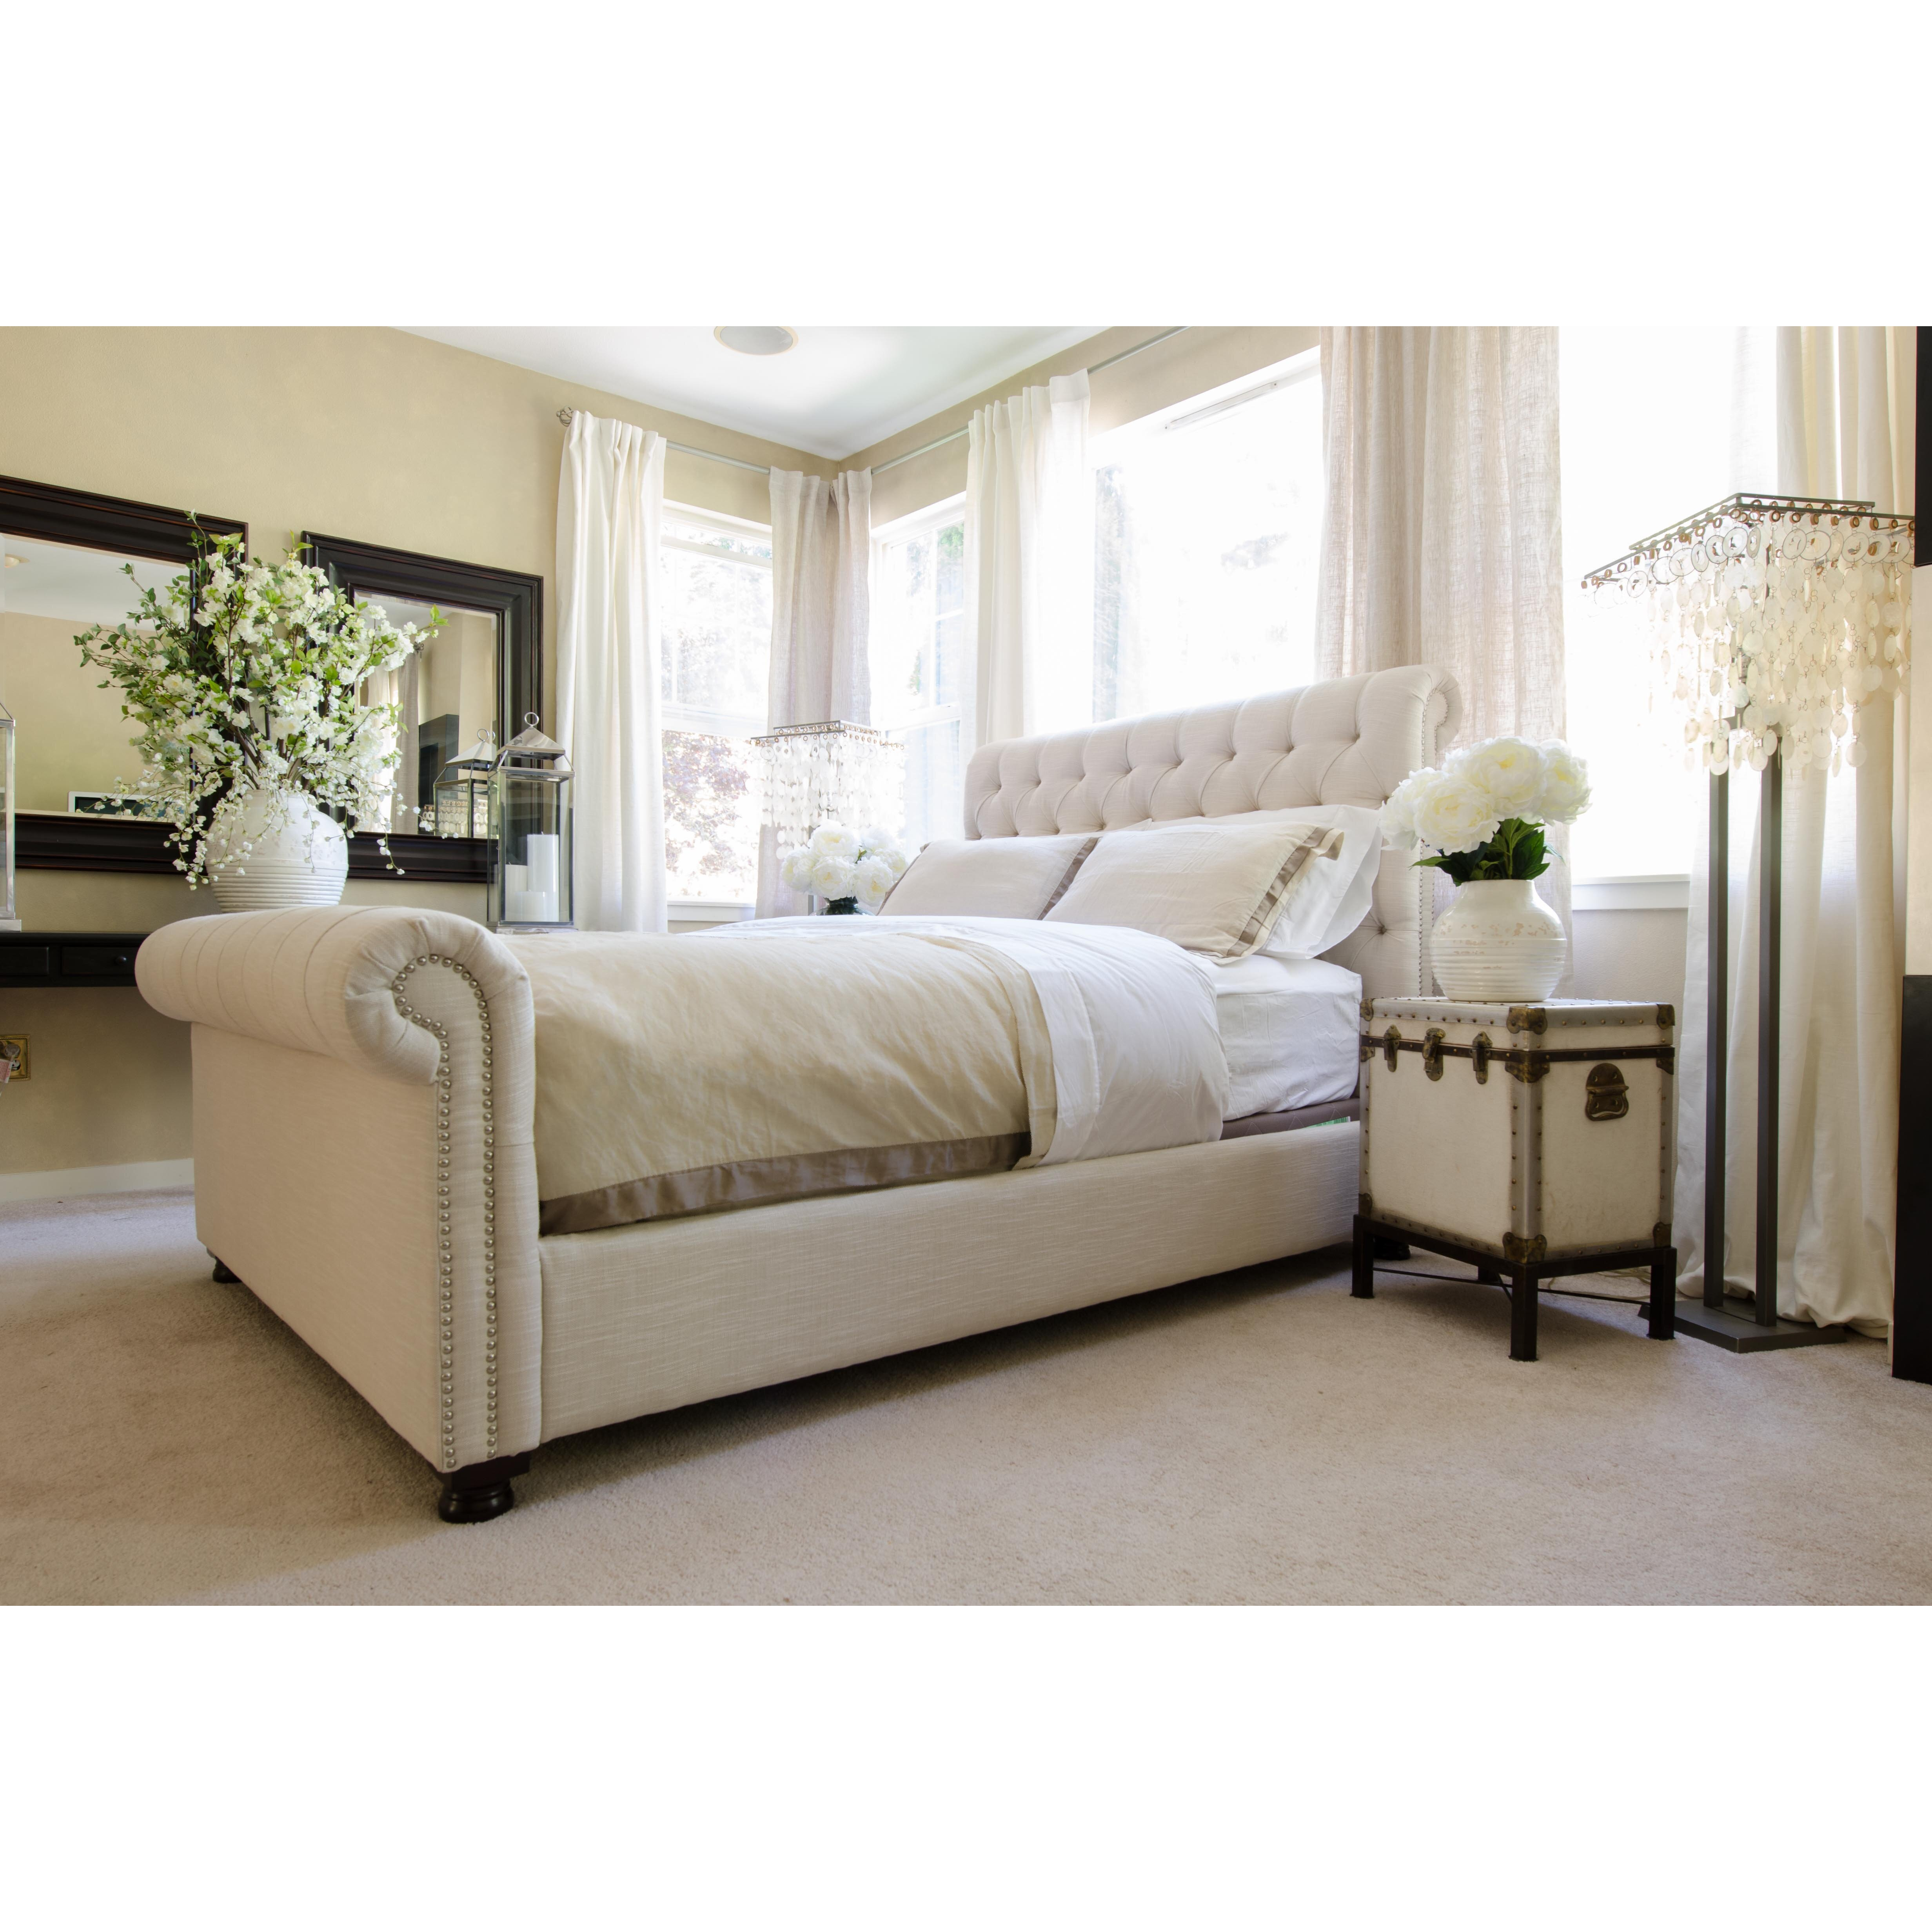 Elements Fine Home Furnishings Upholstered Sleigh Bed Reviews Wayfair